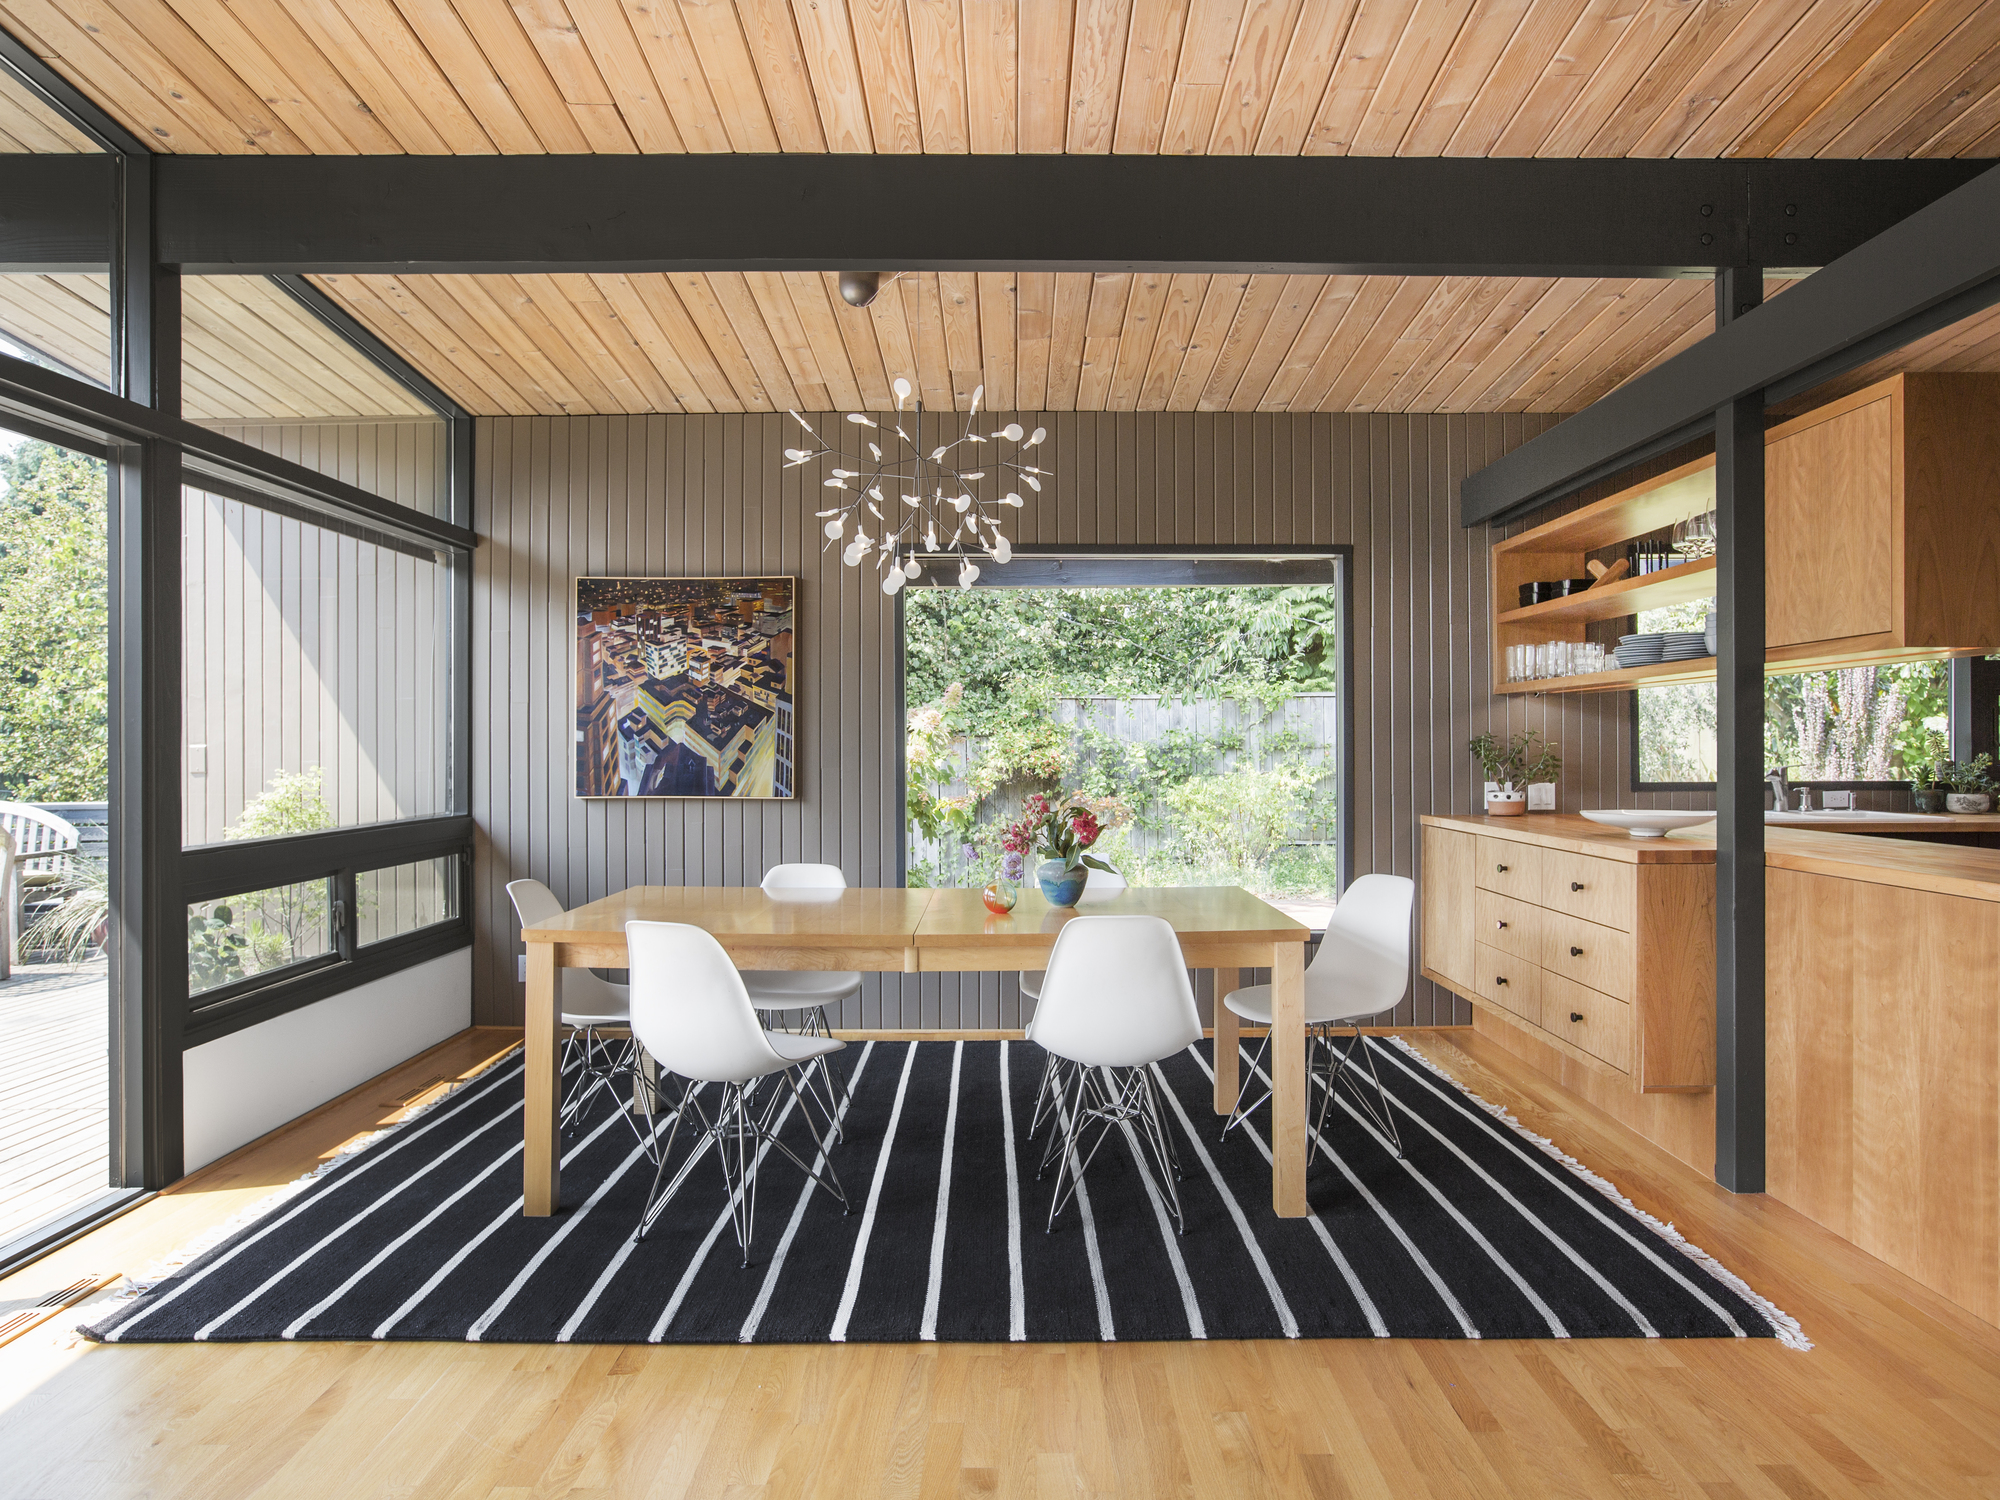 Hillside Midcentury Shed Architecture Design Archdaily